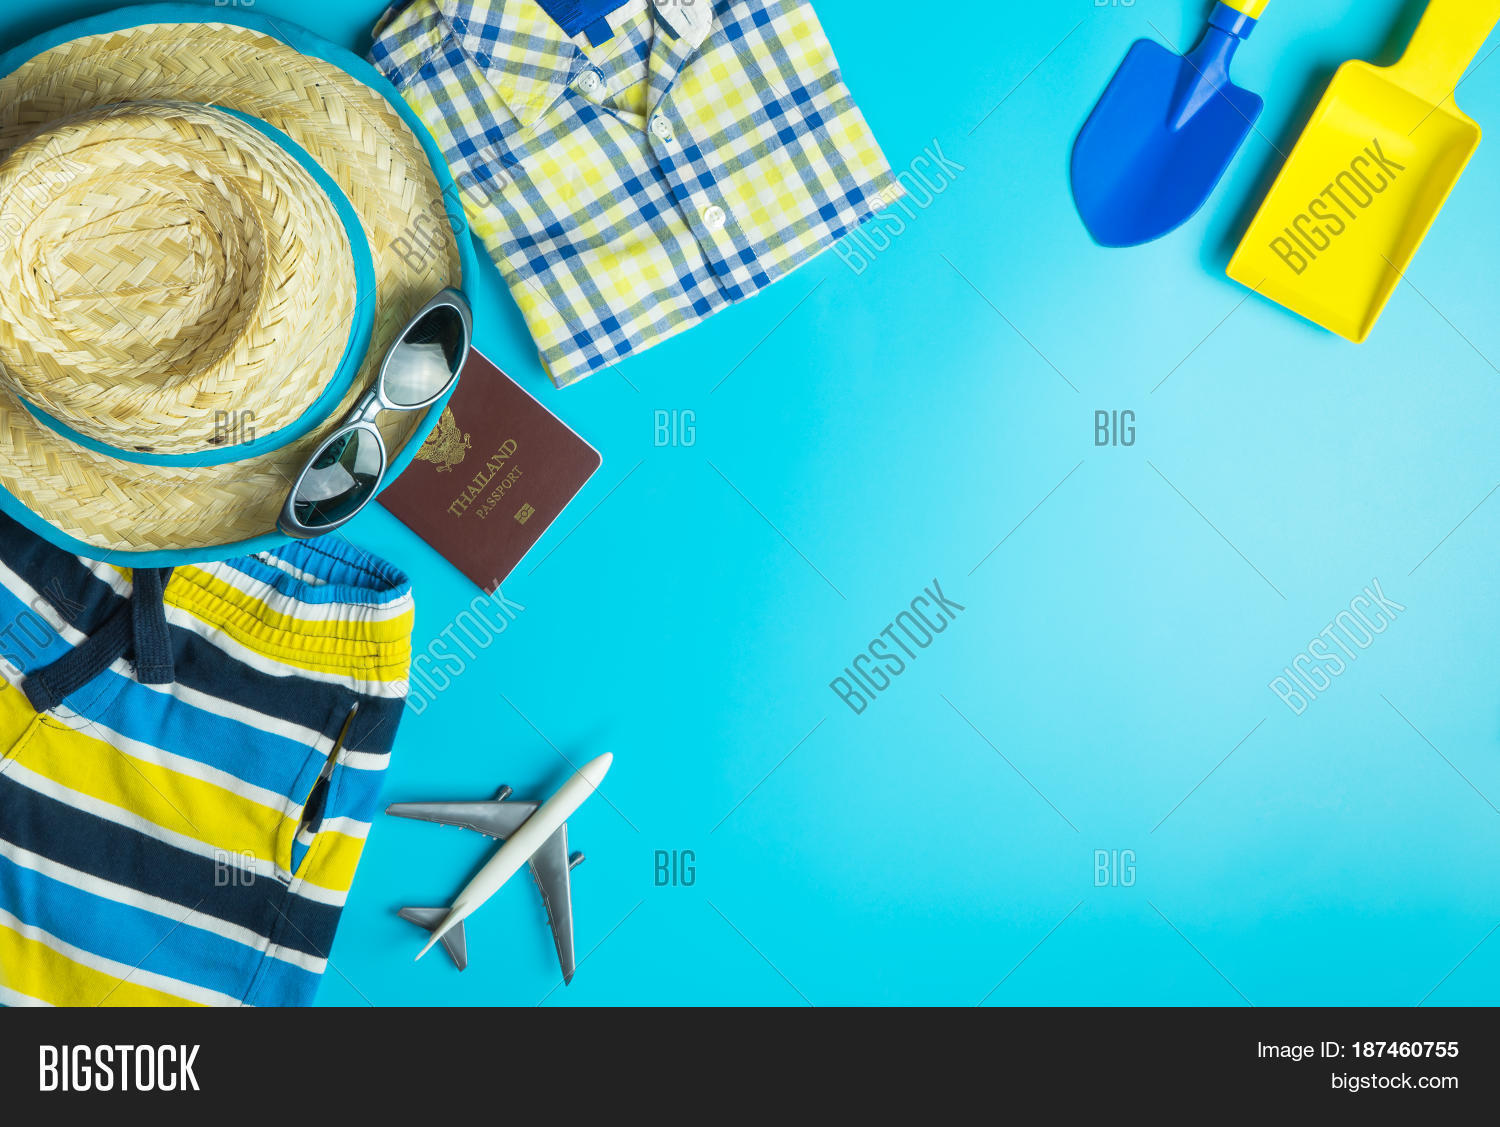 Fashion Toys For Boys : Summer travel fashion toys boys on image photo bigstock